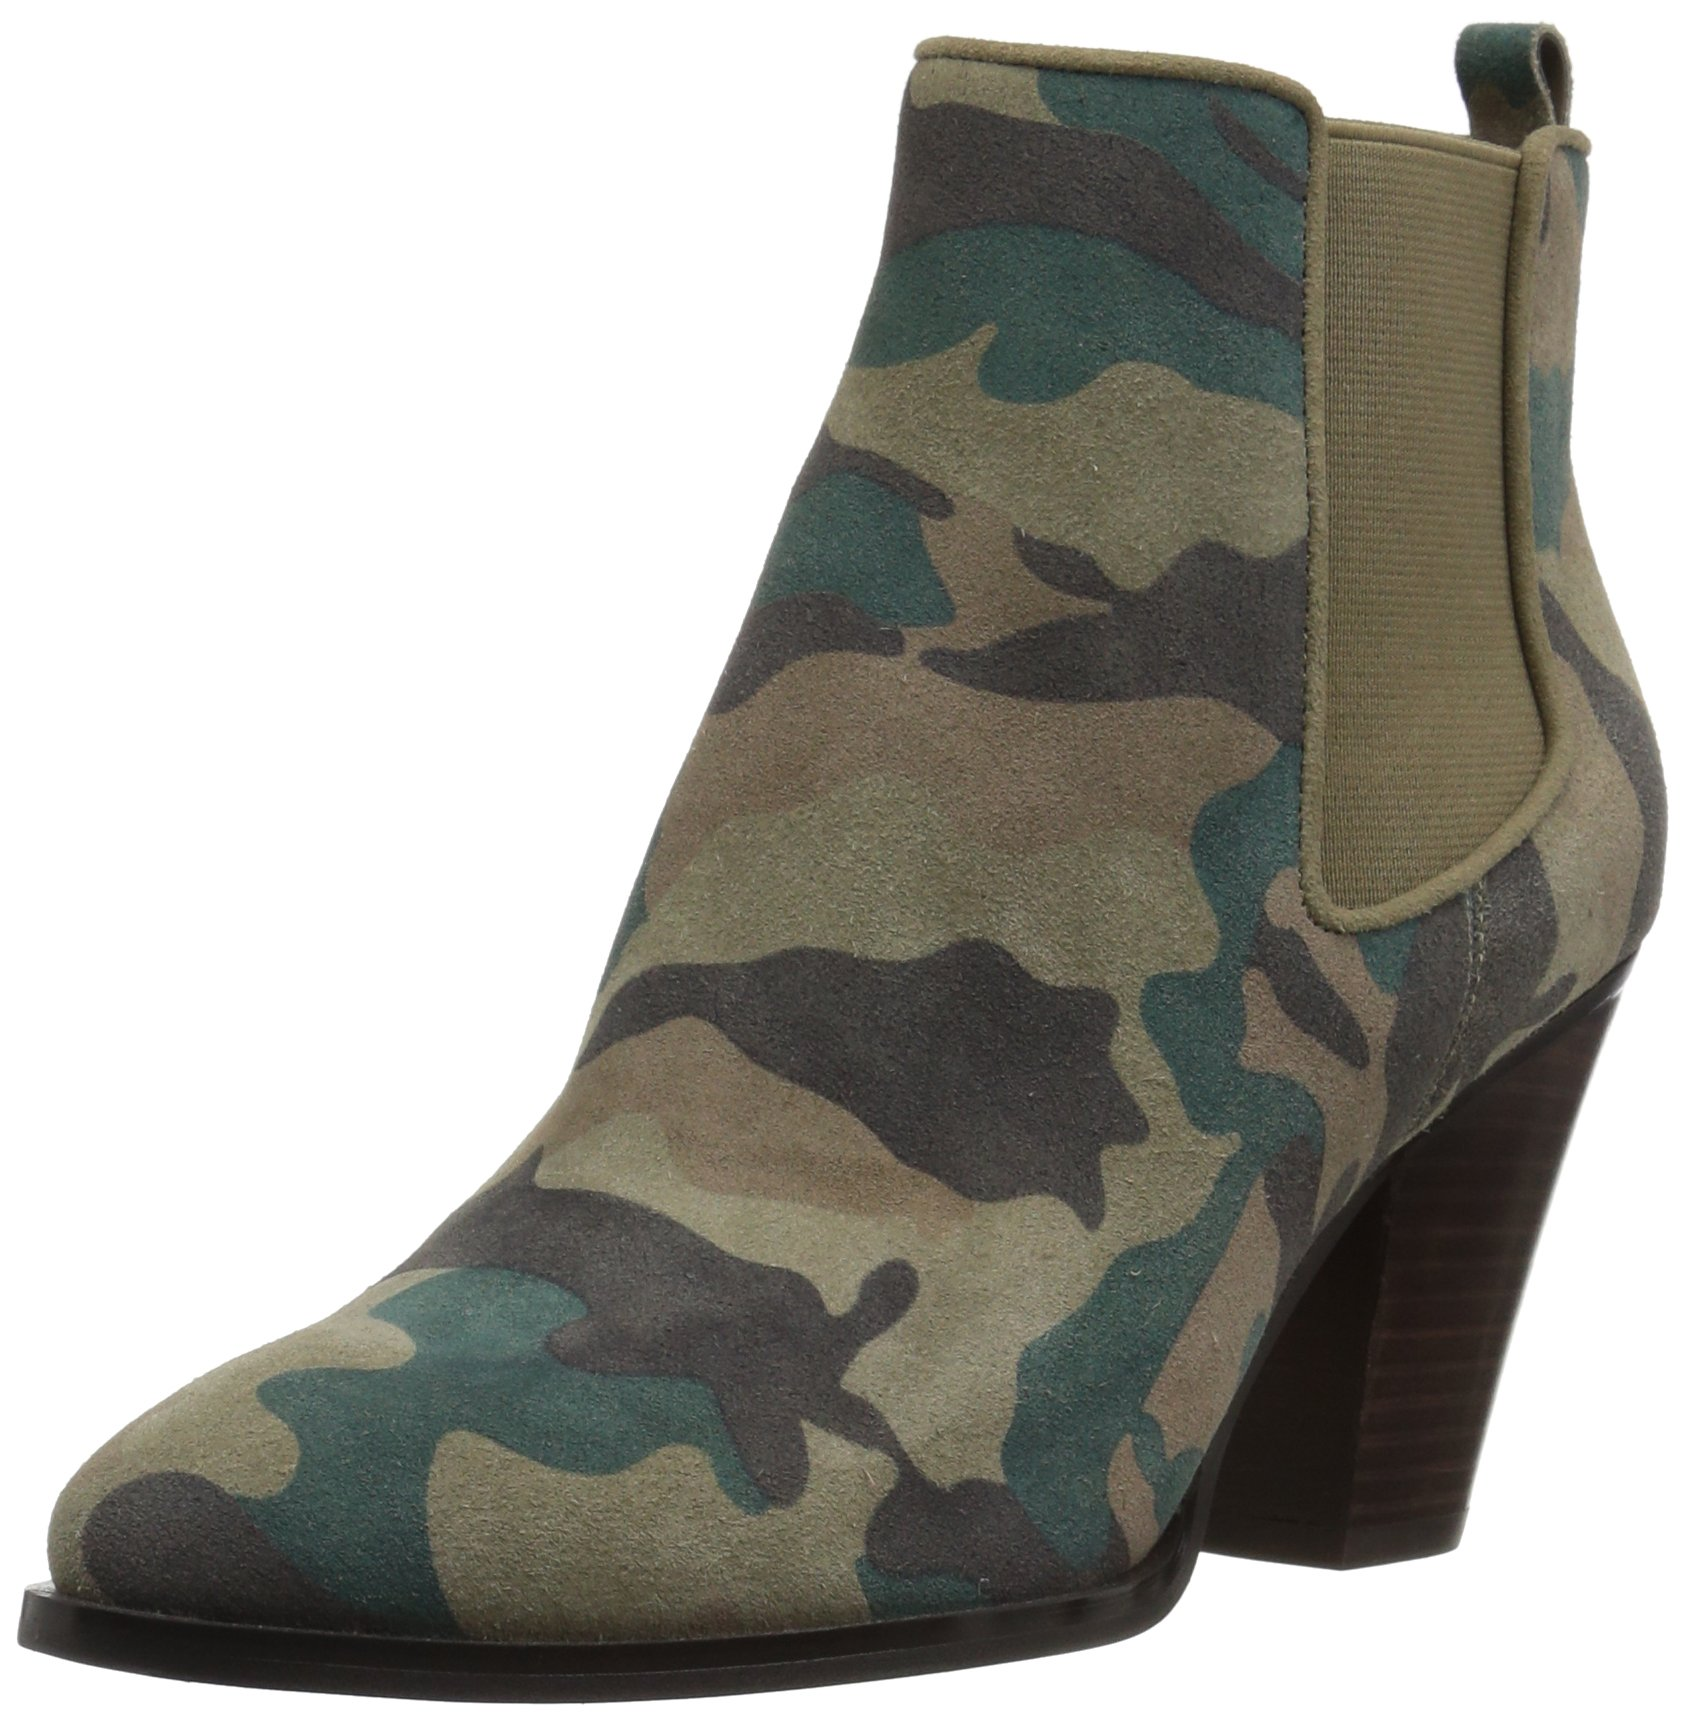 The Fix Women's Joelle Cowboy Style Ankle Boot, Autumn Green Camo, 8 B US